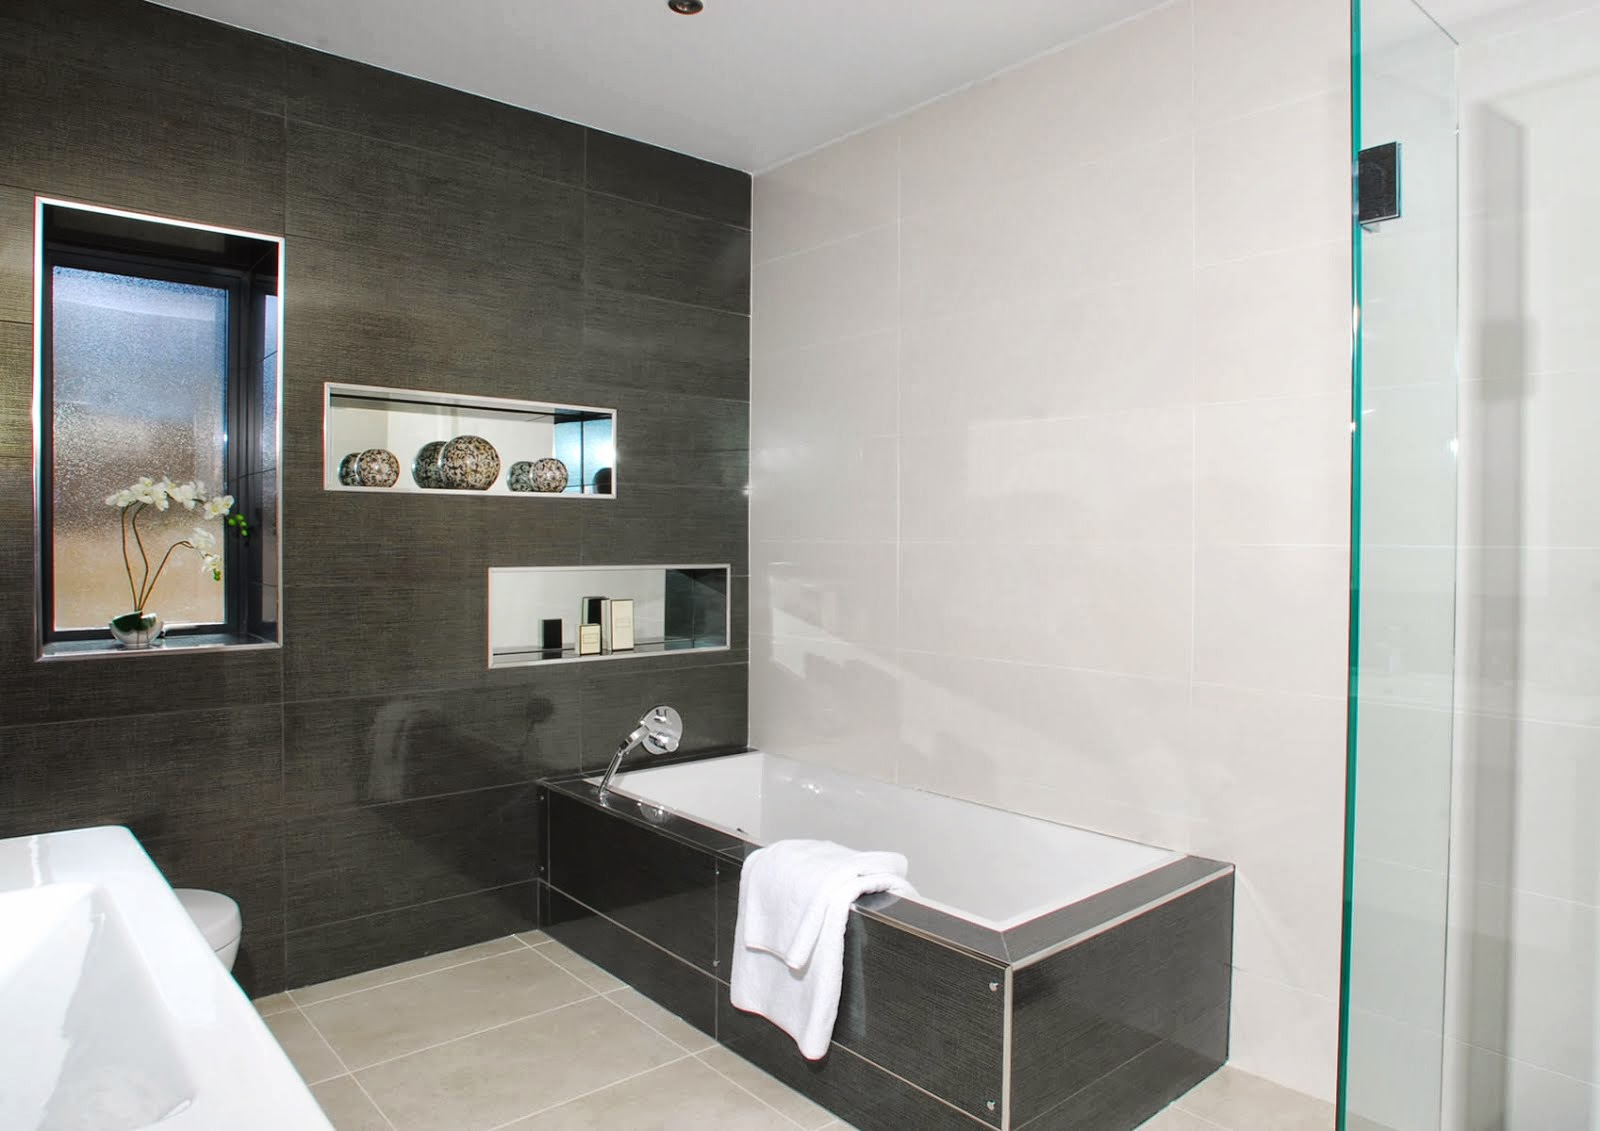 bathroom design ideas uk ForBathroom Ideas Uk